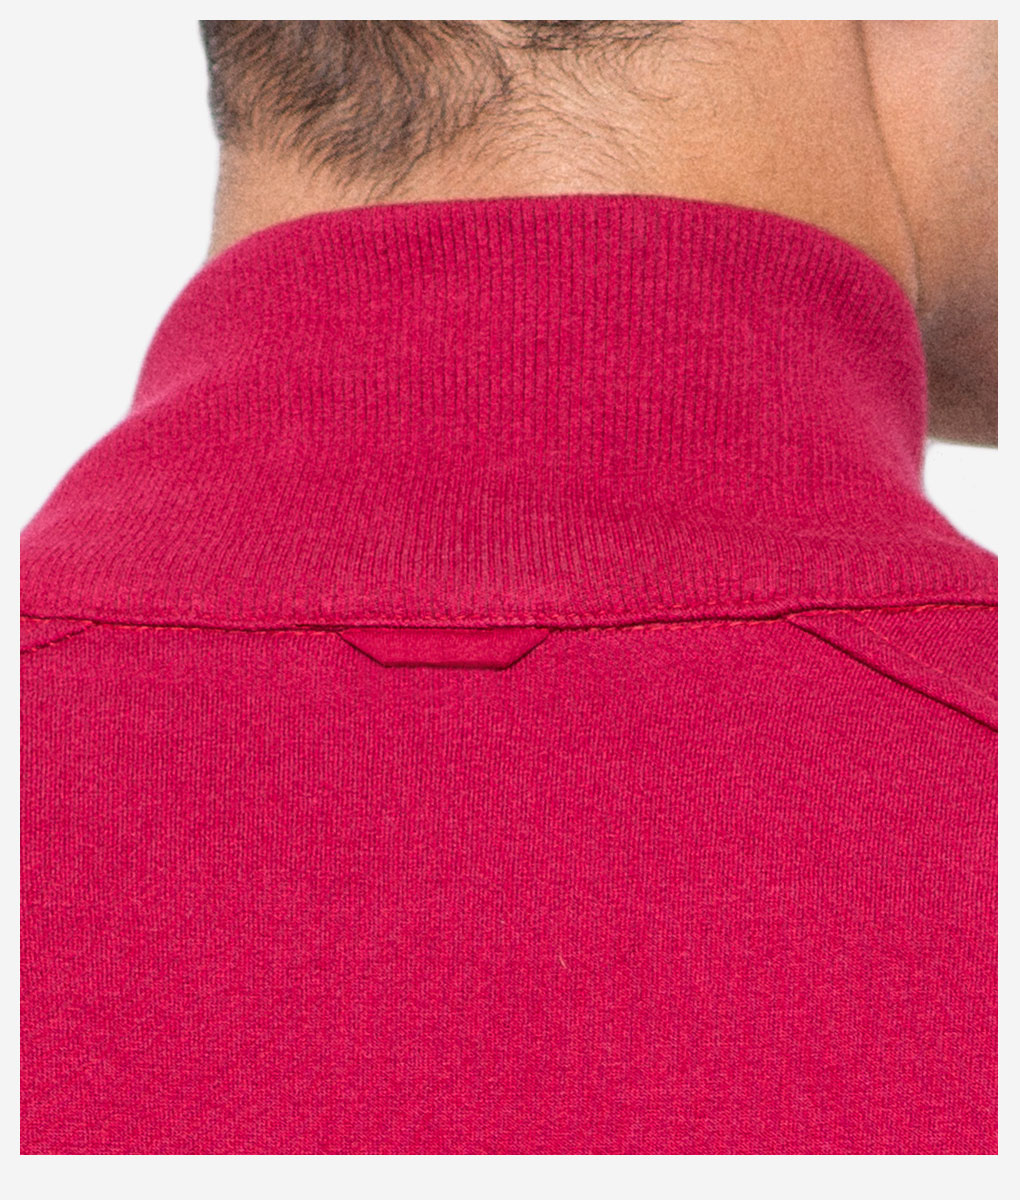 casual-cycling-clothing-jacket-garnet-canale-neck-back-neck-d01